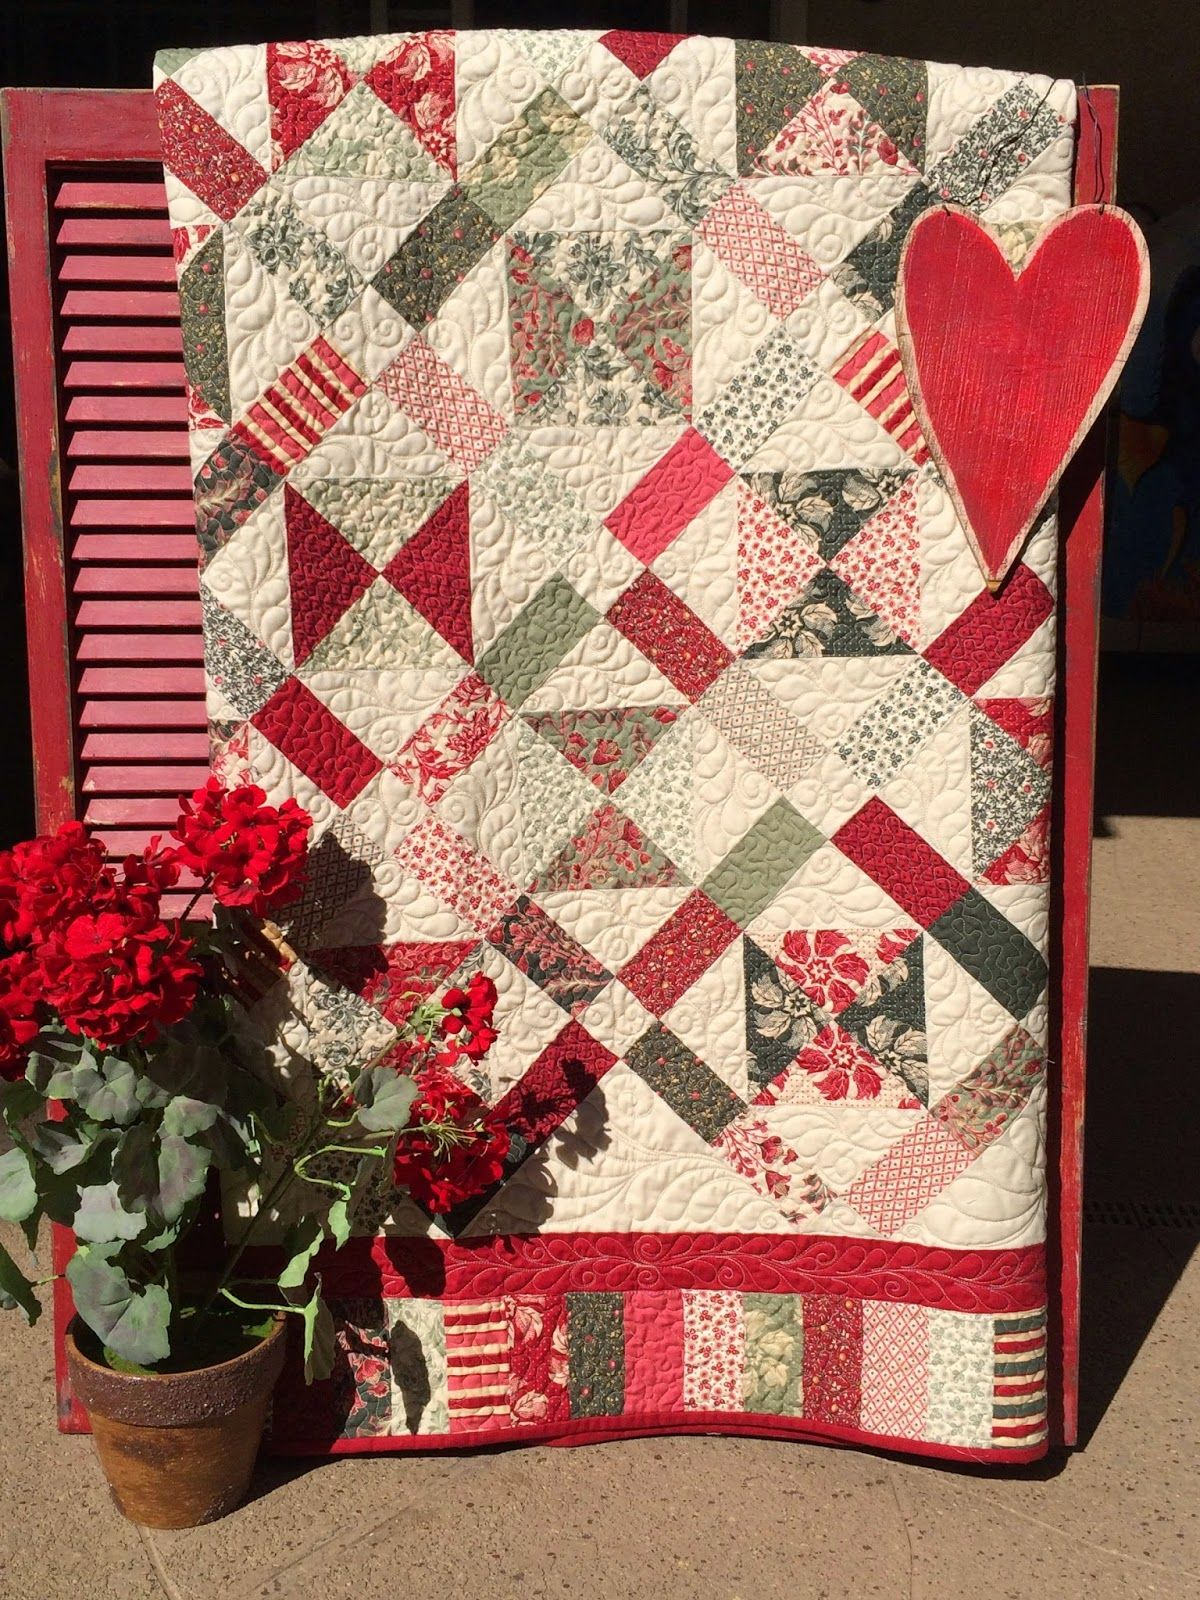 Petite Four My Red Door Designs Quilting Sewing Imagination